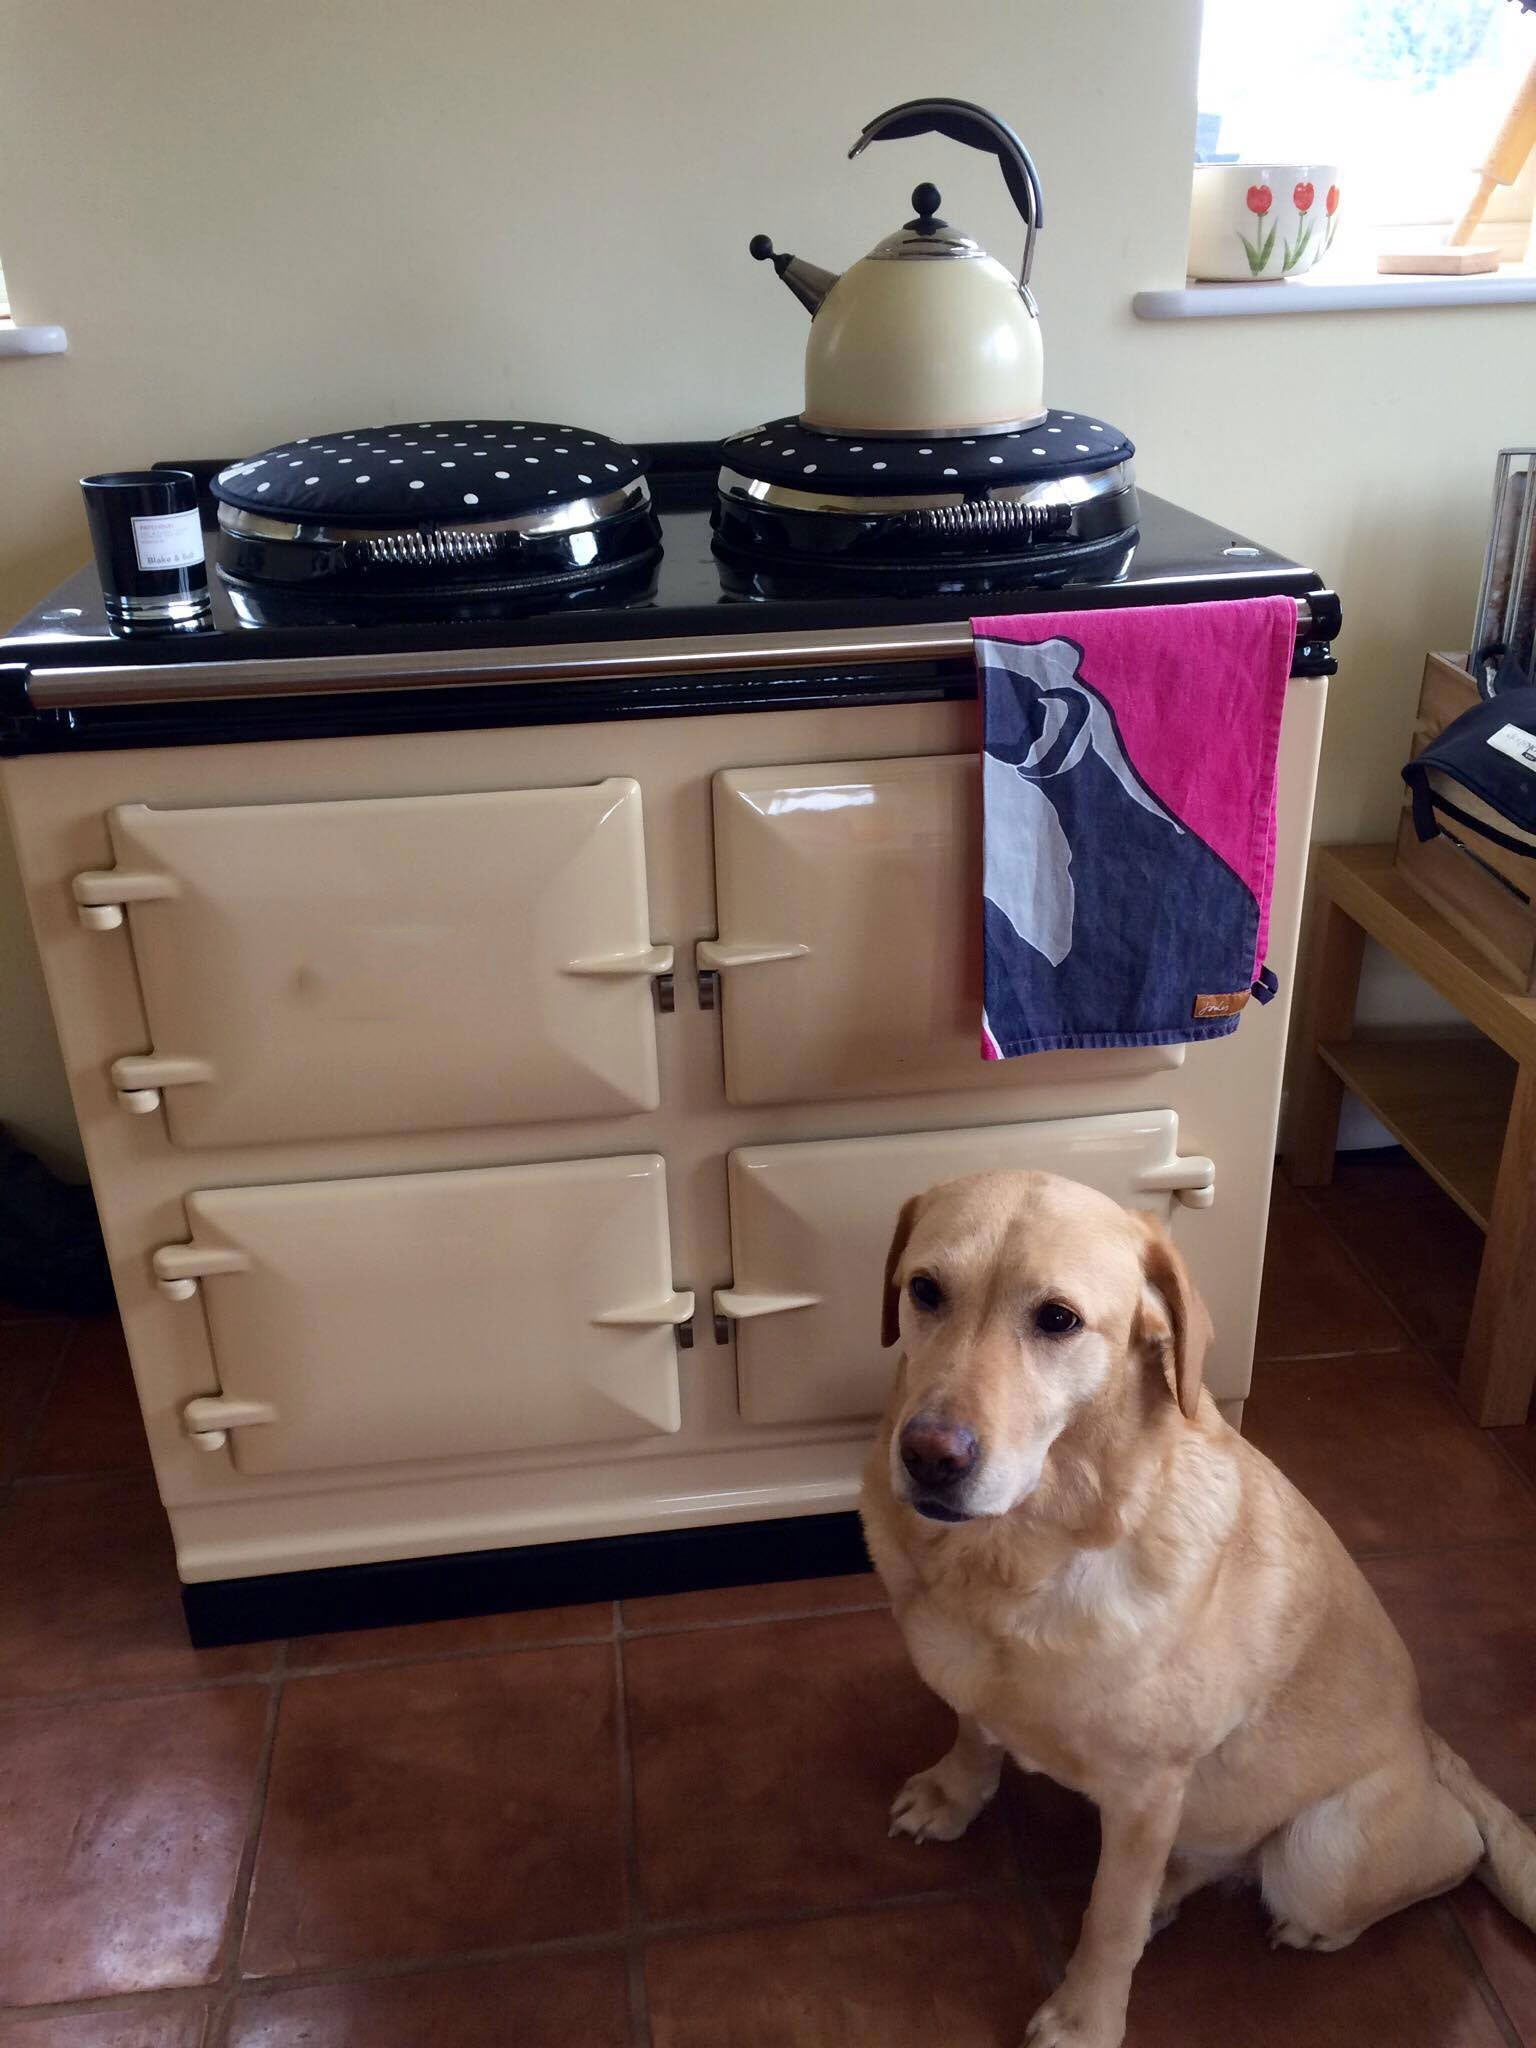 Labrador with cream cooker